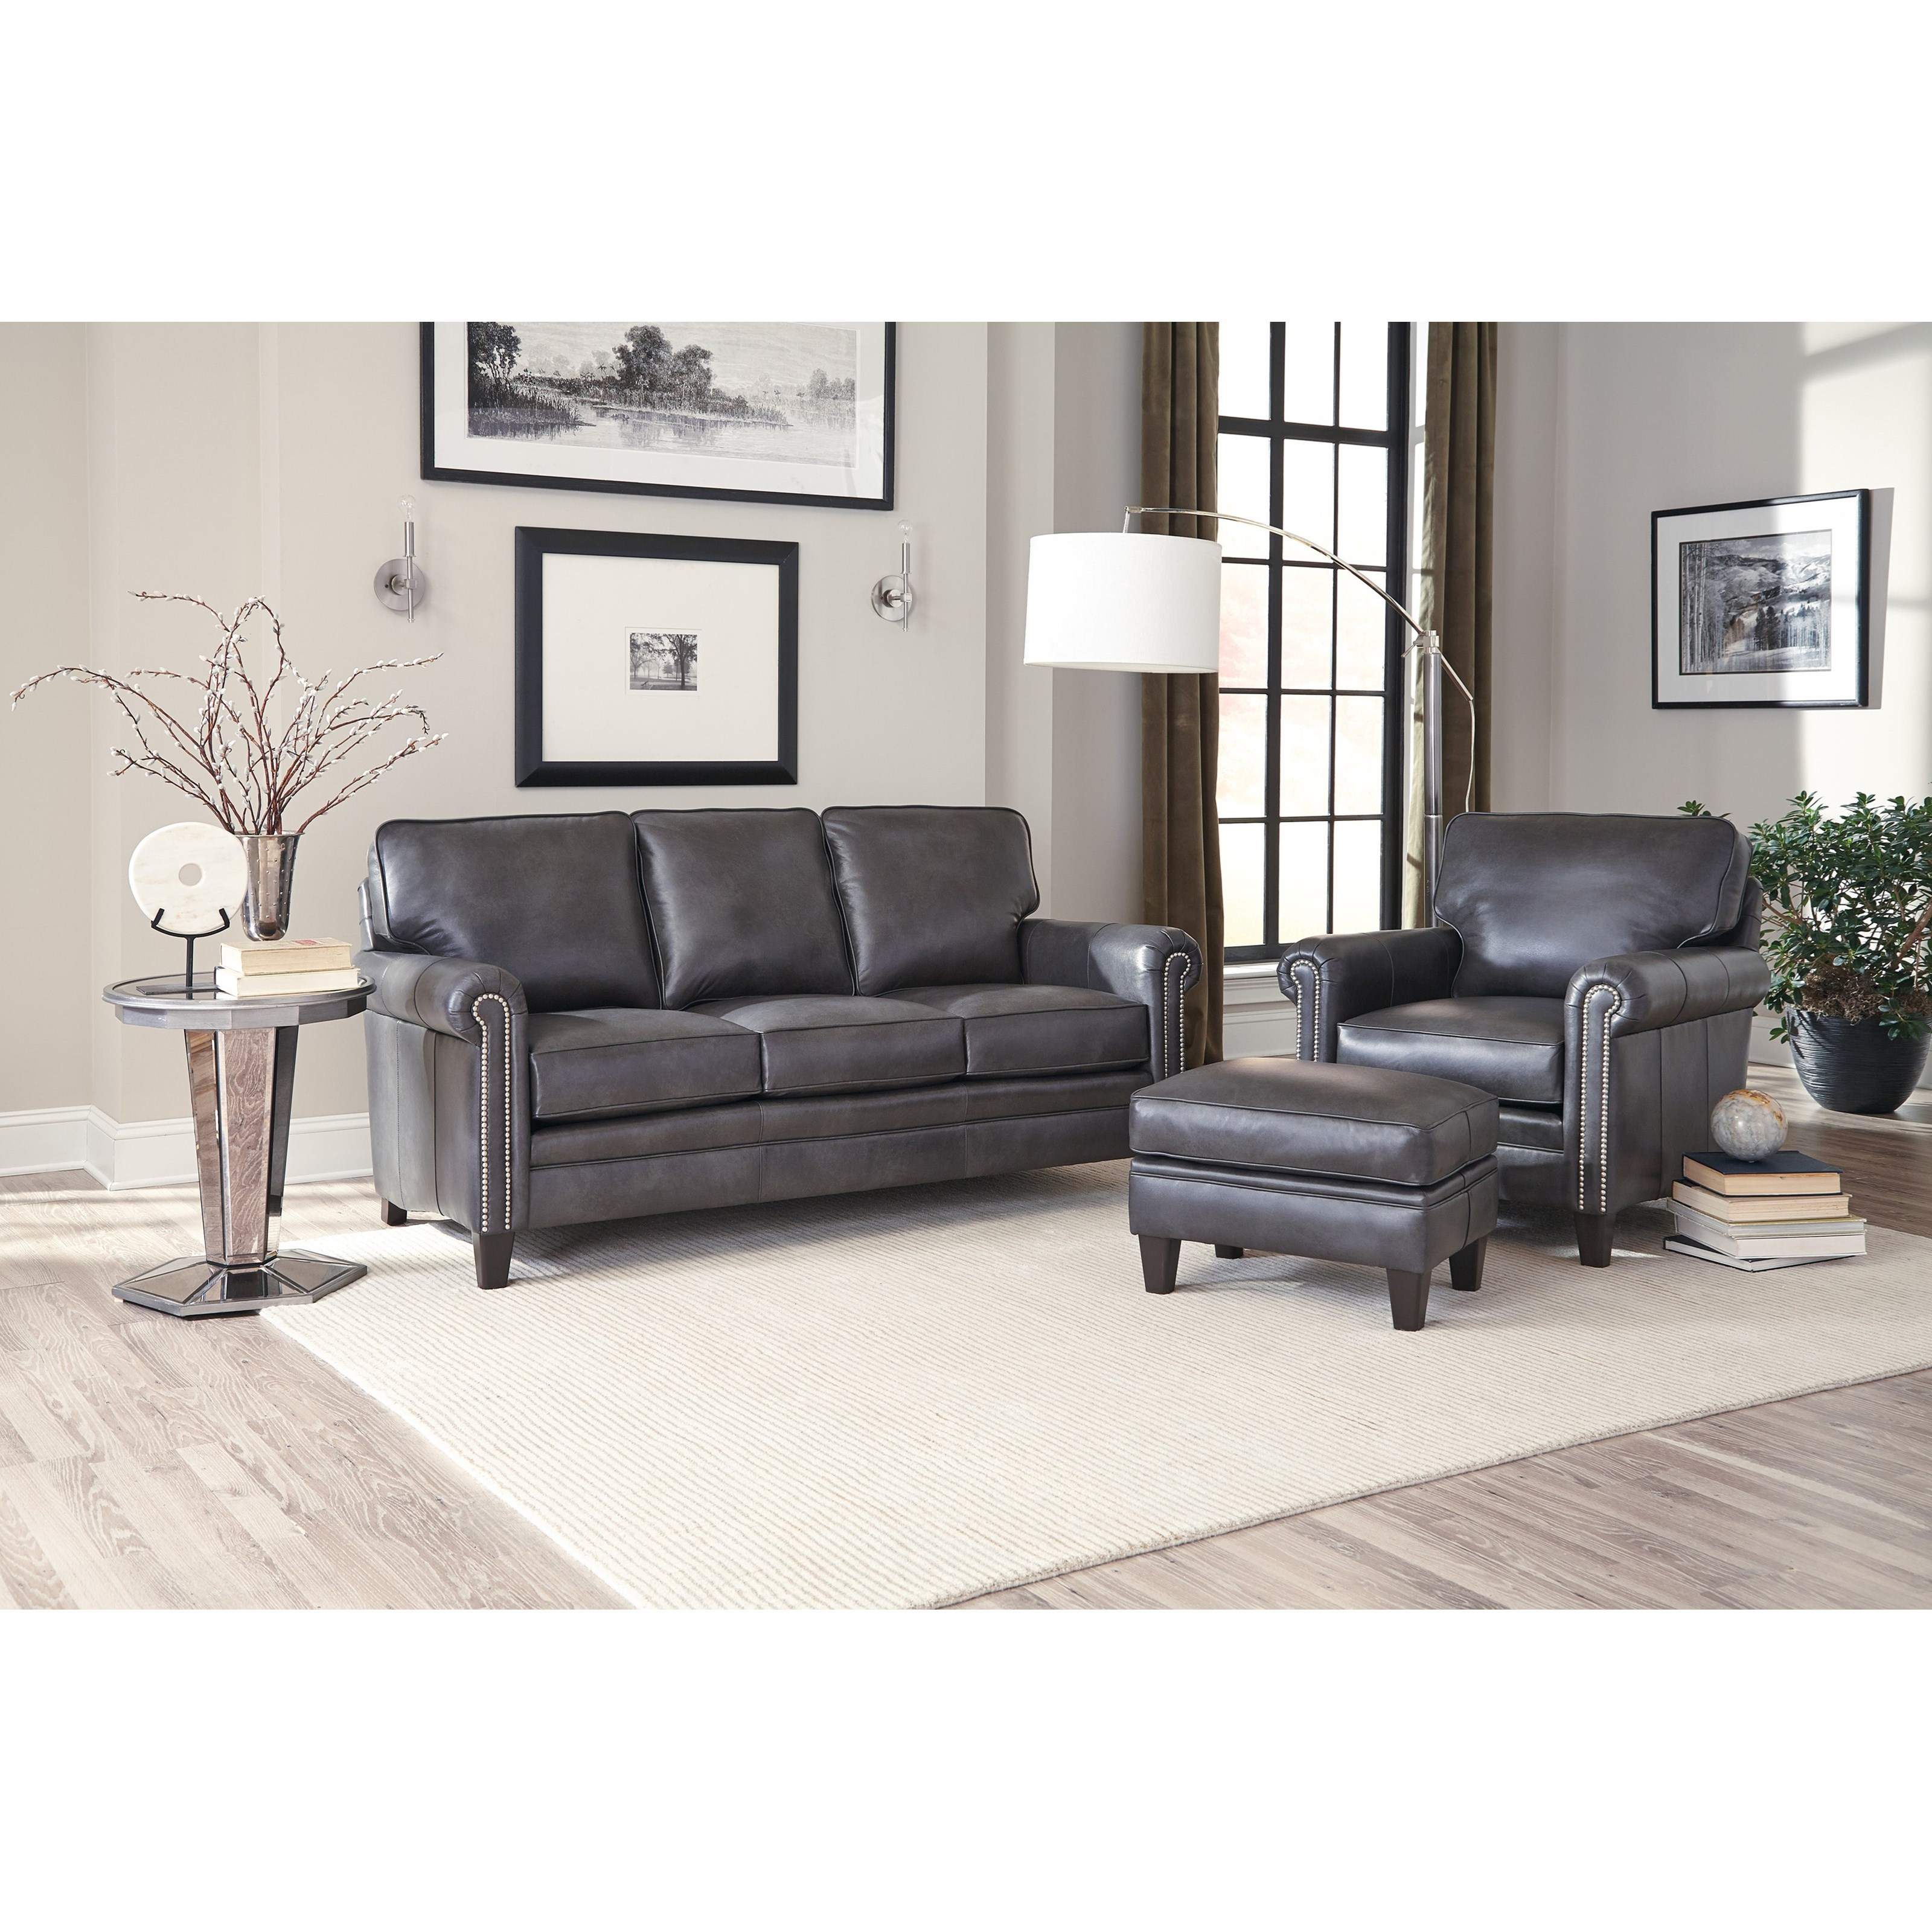 234 Stationary Living Room Group by Smith Brothers at Turk Furniture